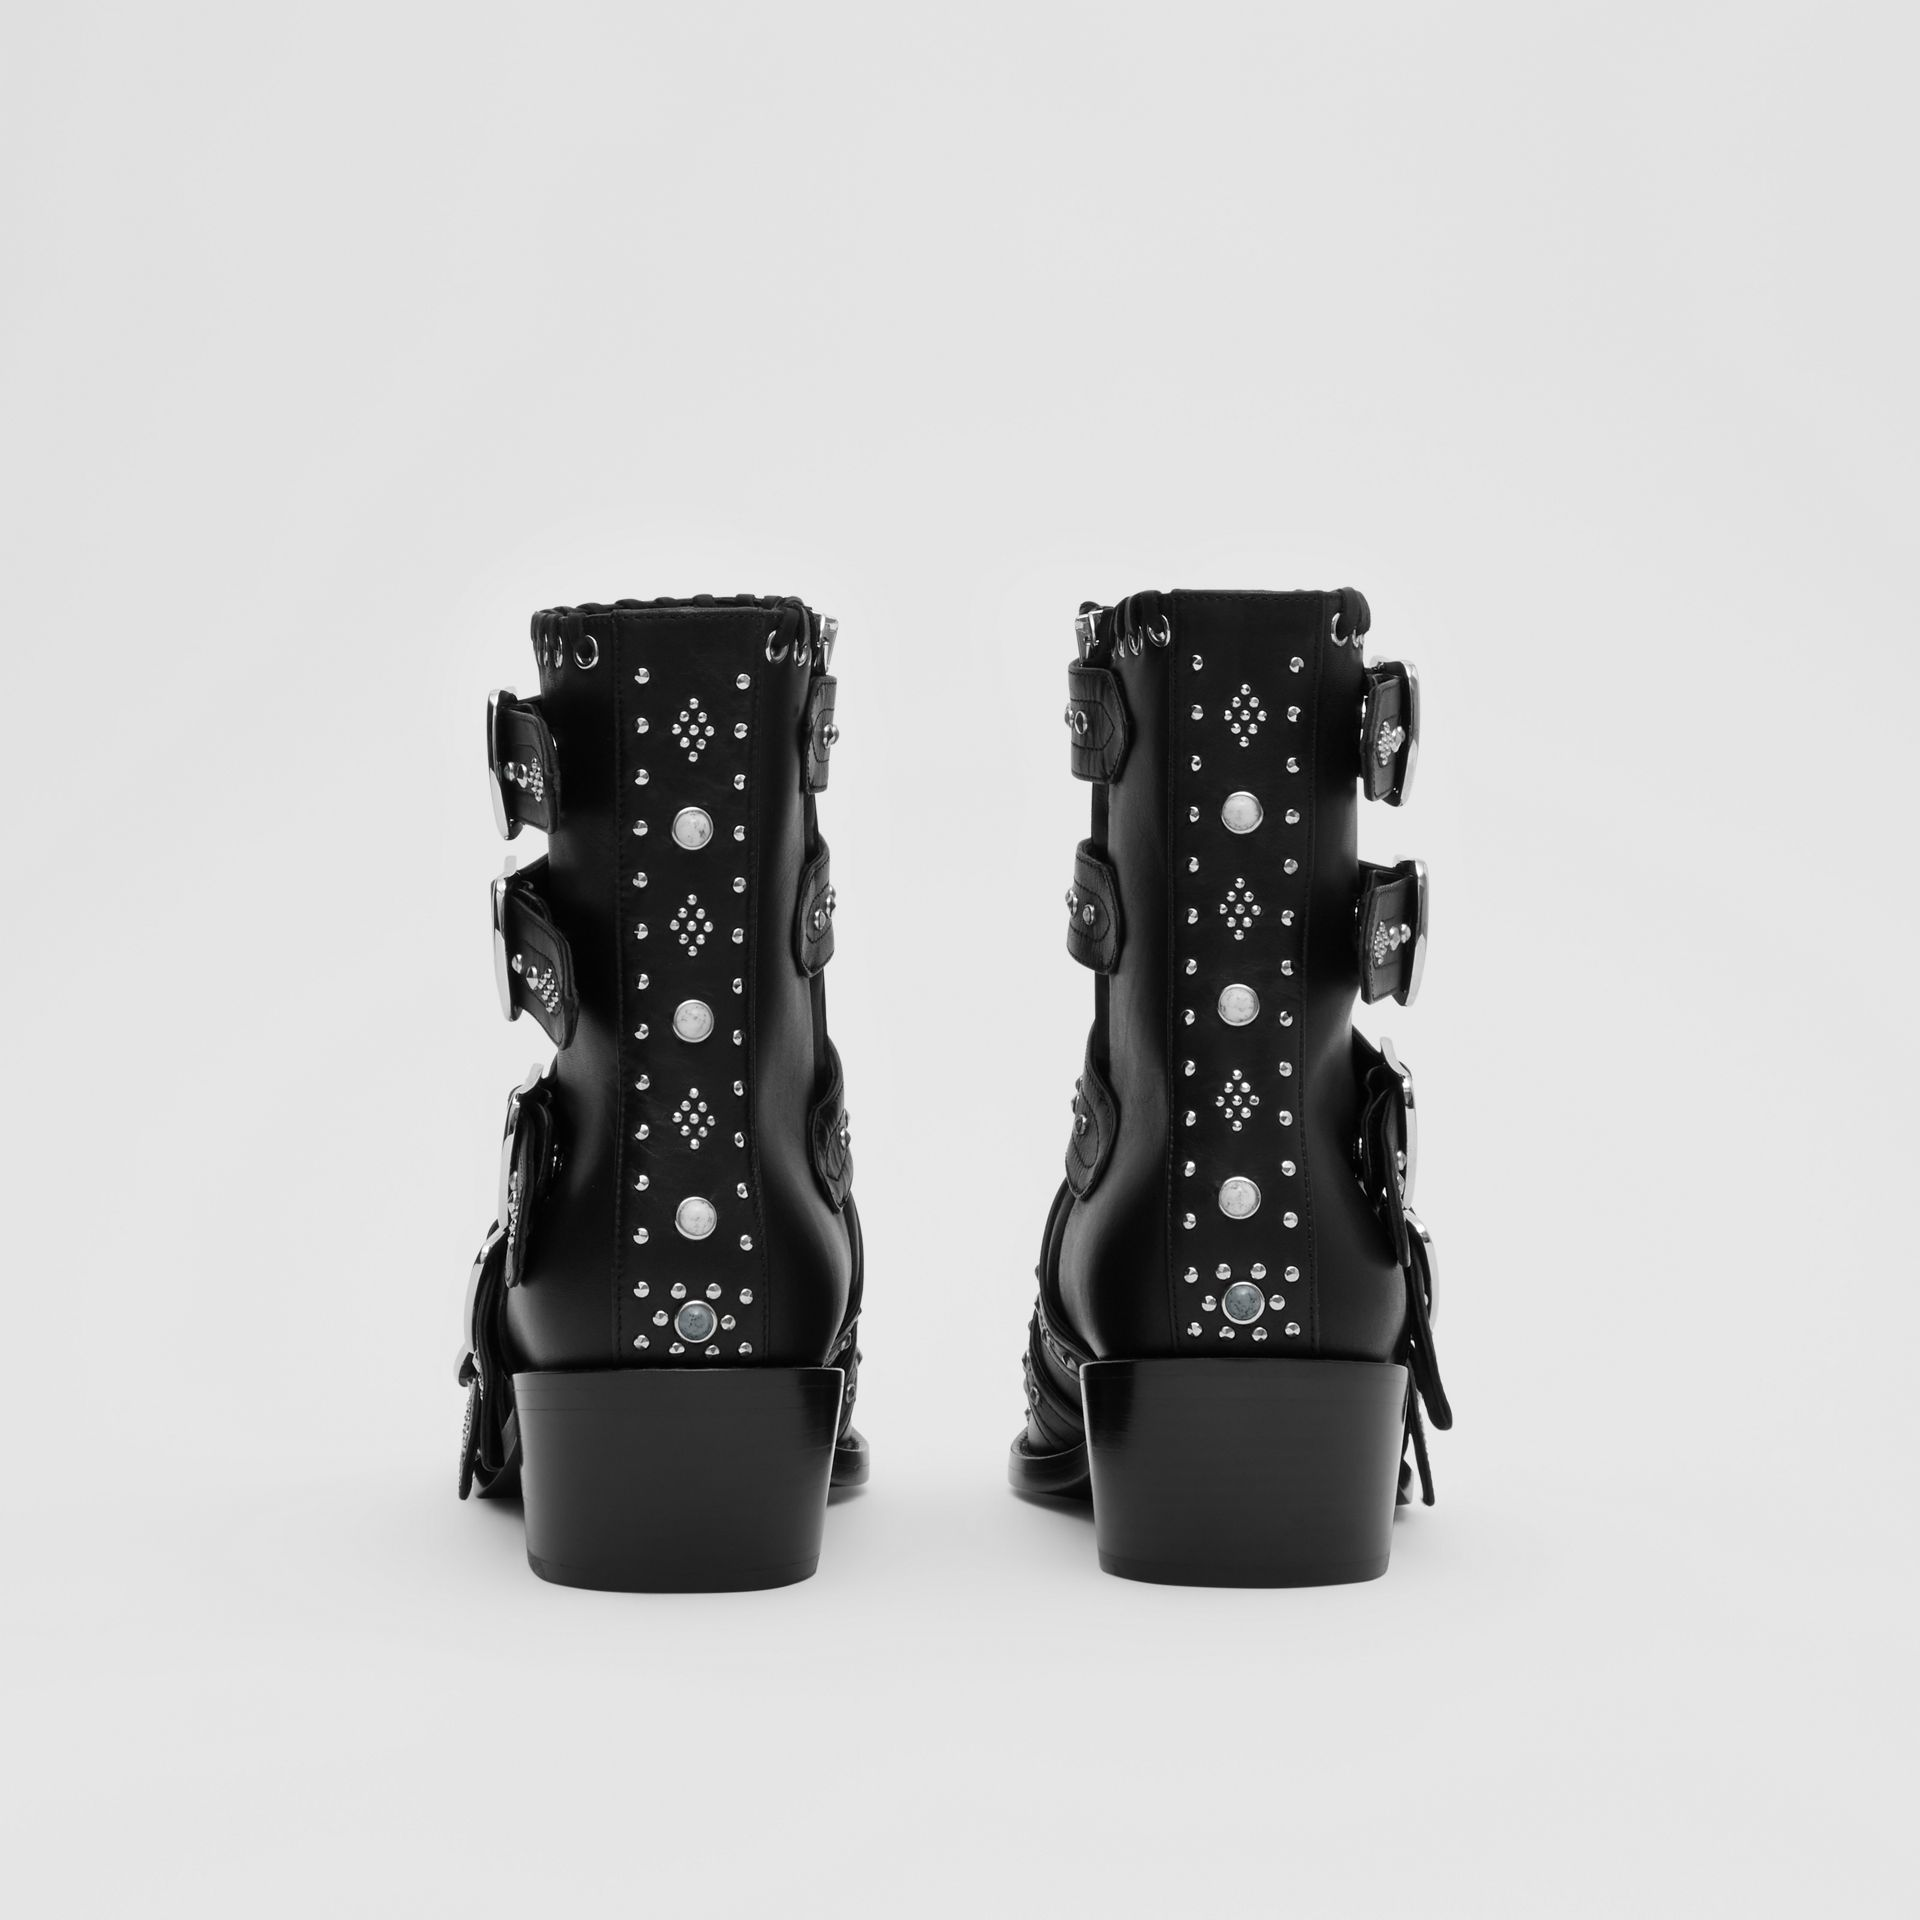 Buckled Embellished Leather Peep-toe Ankle Boots in Black - Women | Burberry - gallery image 3